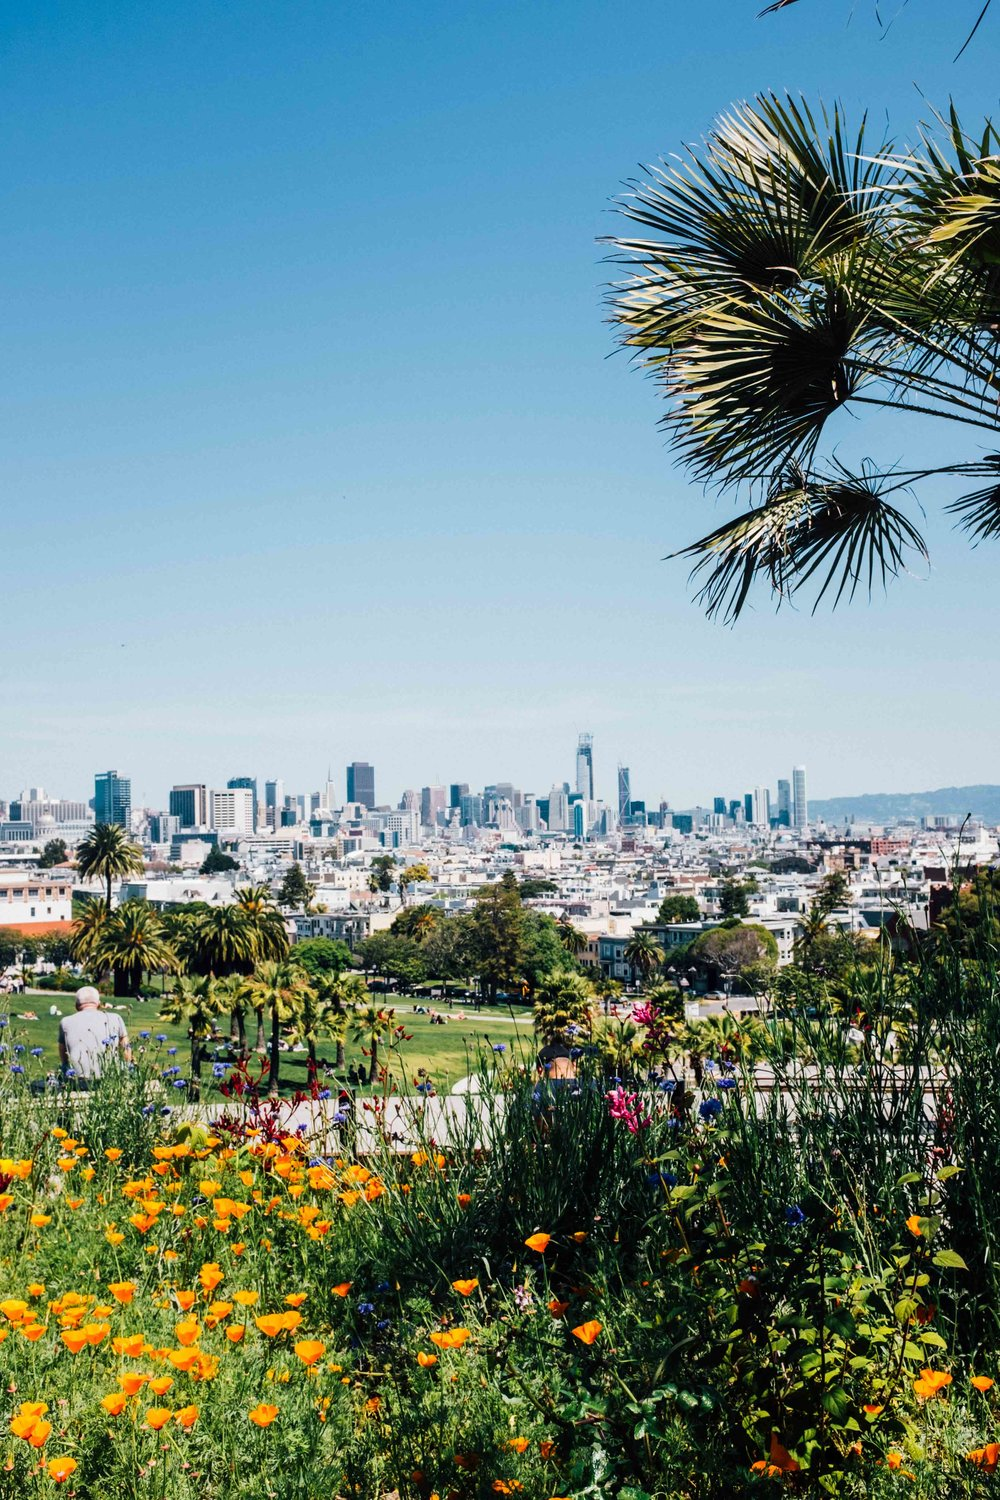 The wonderful view from Mission Dolores Park. Photo: Marine Raynard